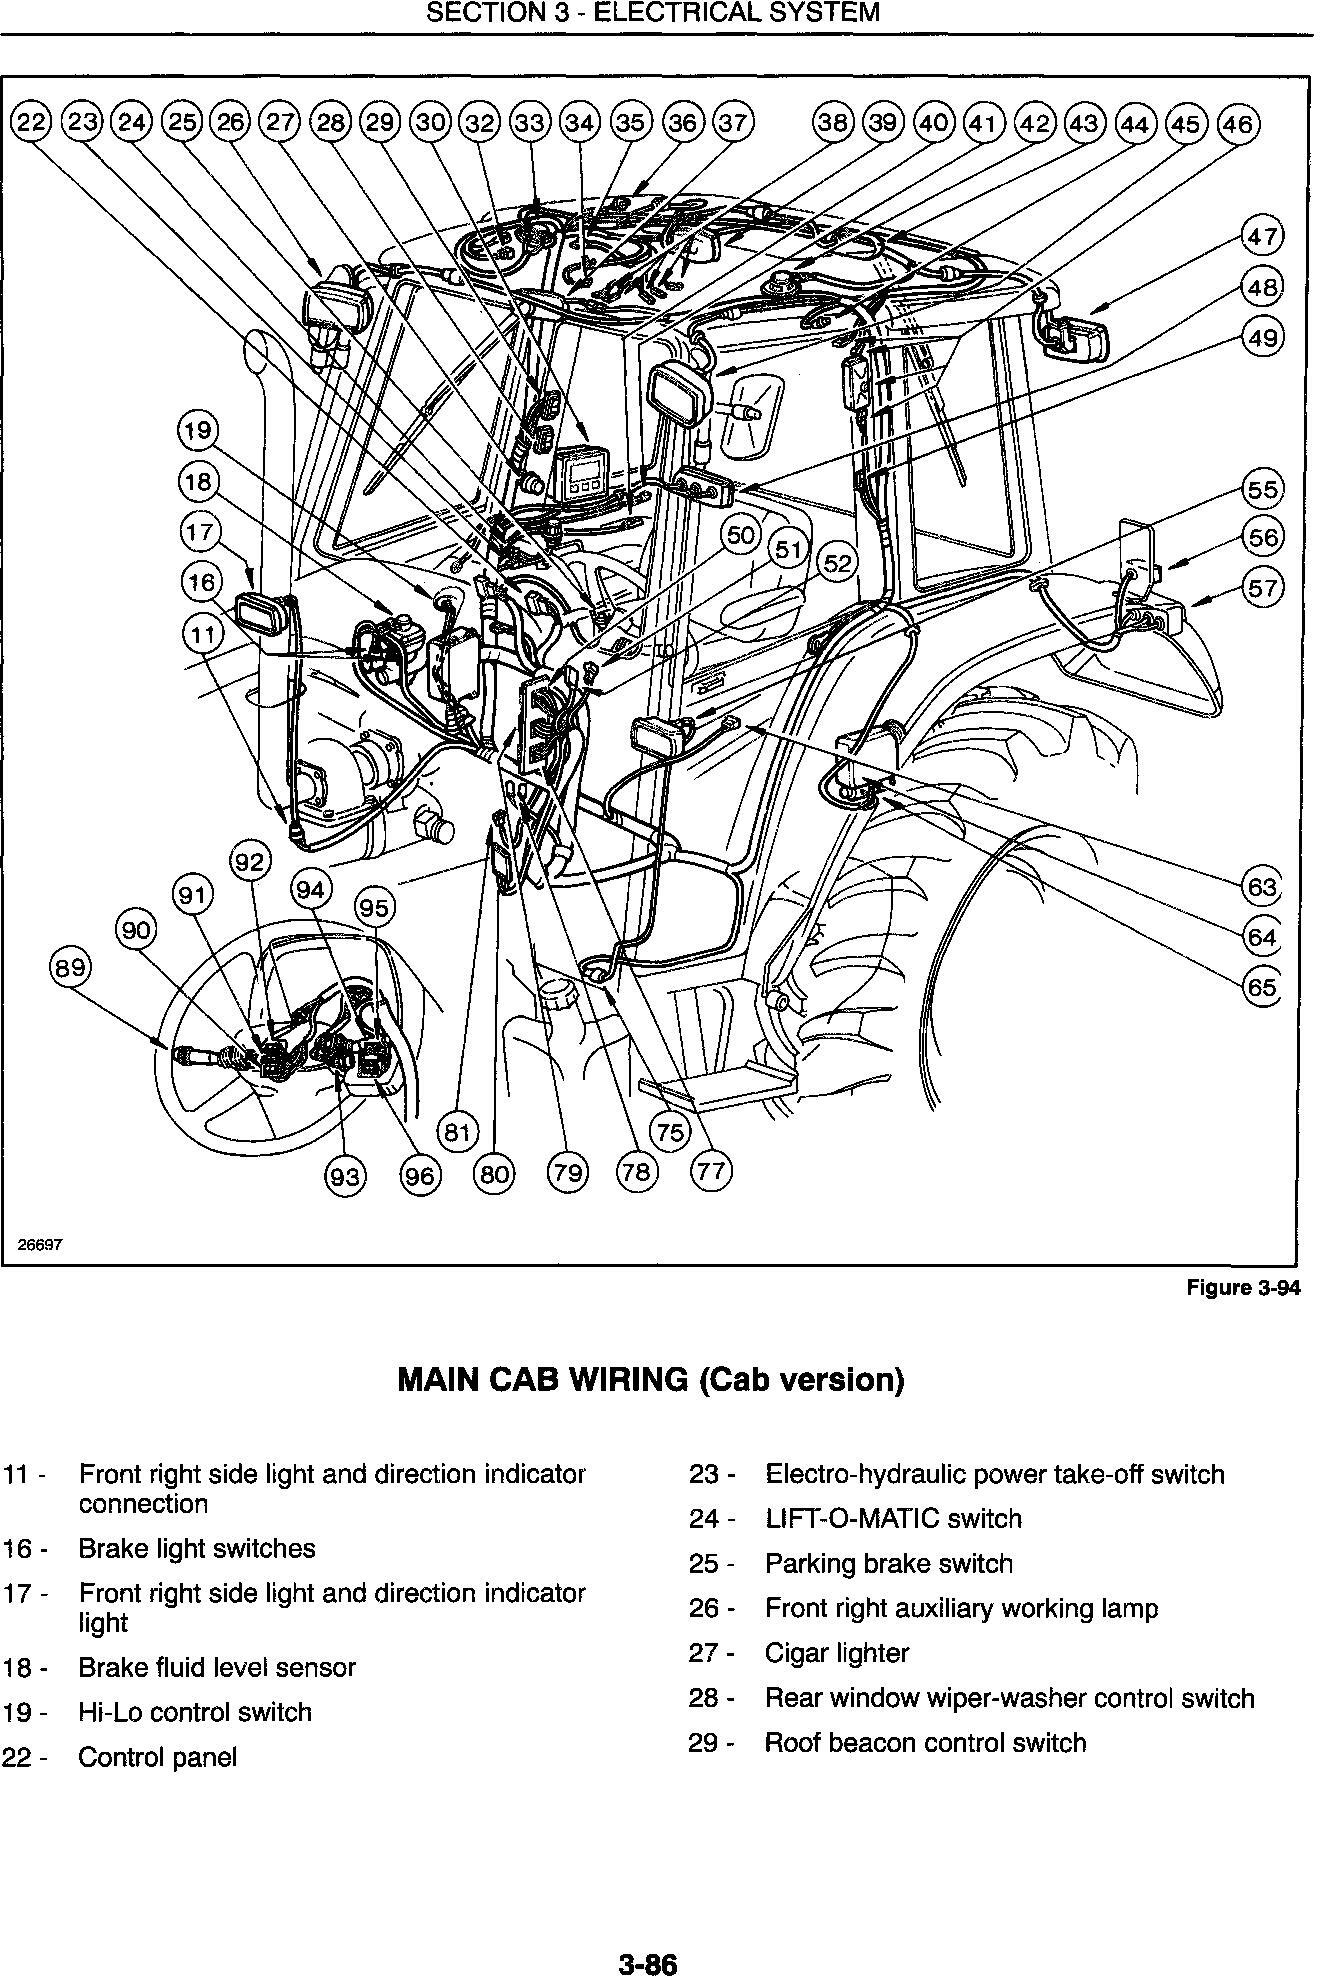 New Holland 4835, 5635, 6635, 7635 Tractor Complete Service Manual - 3